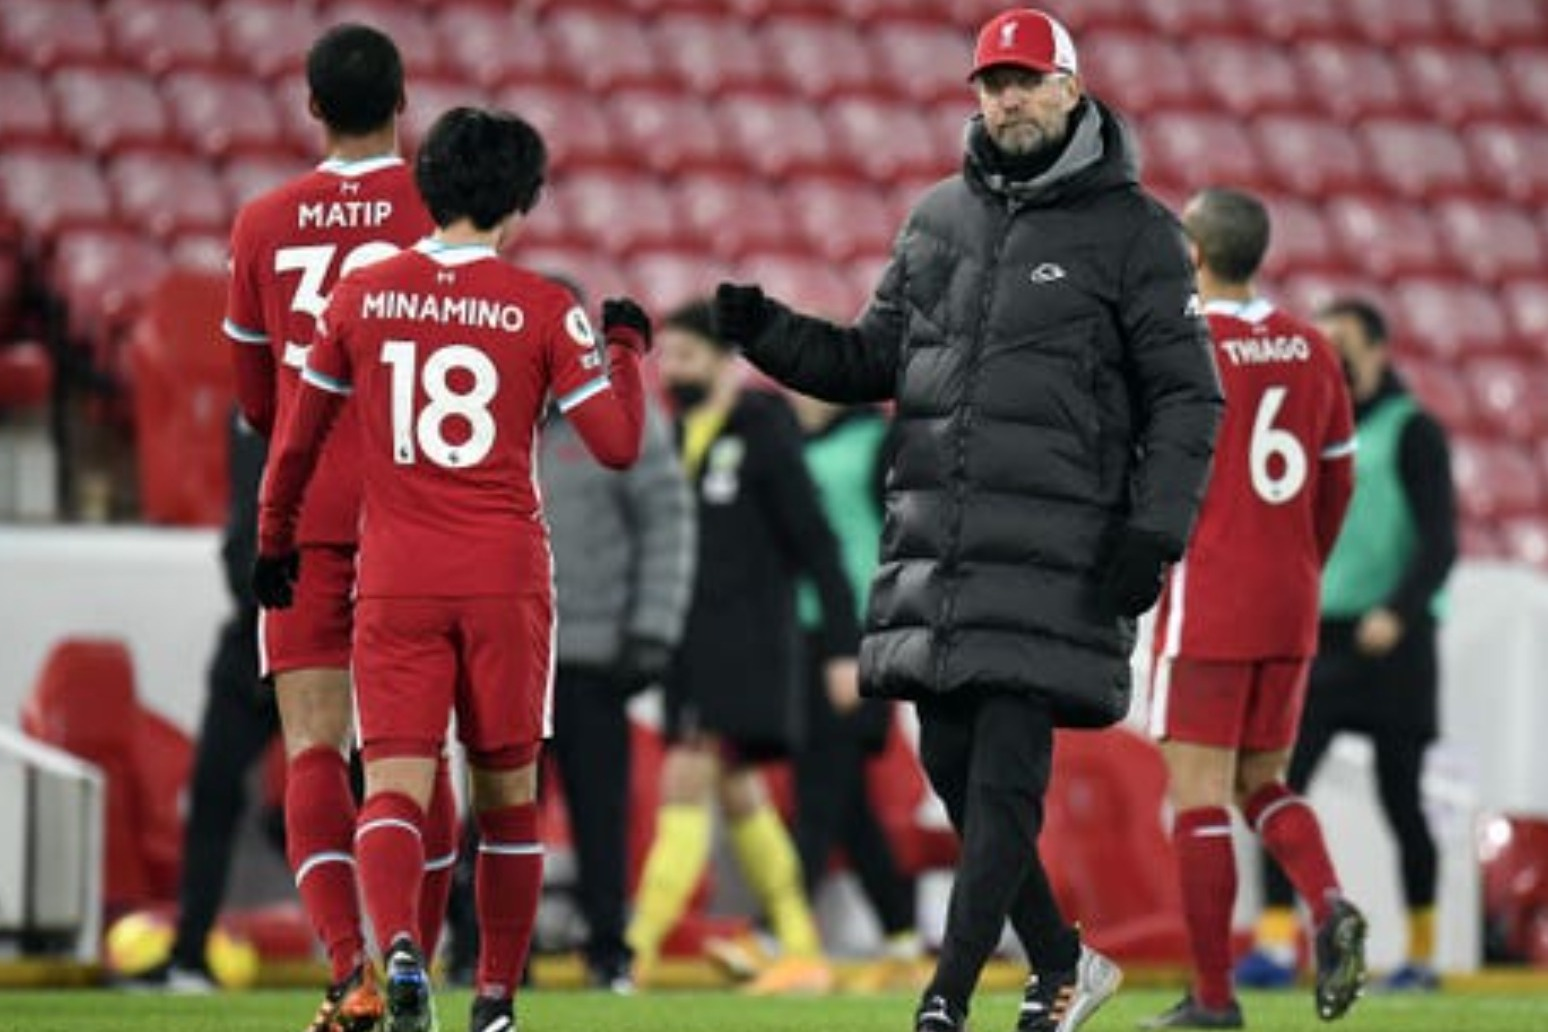 Jurgen Klopp admits Liverpool lack confidence after unbeaten home run is ended thumbnail